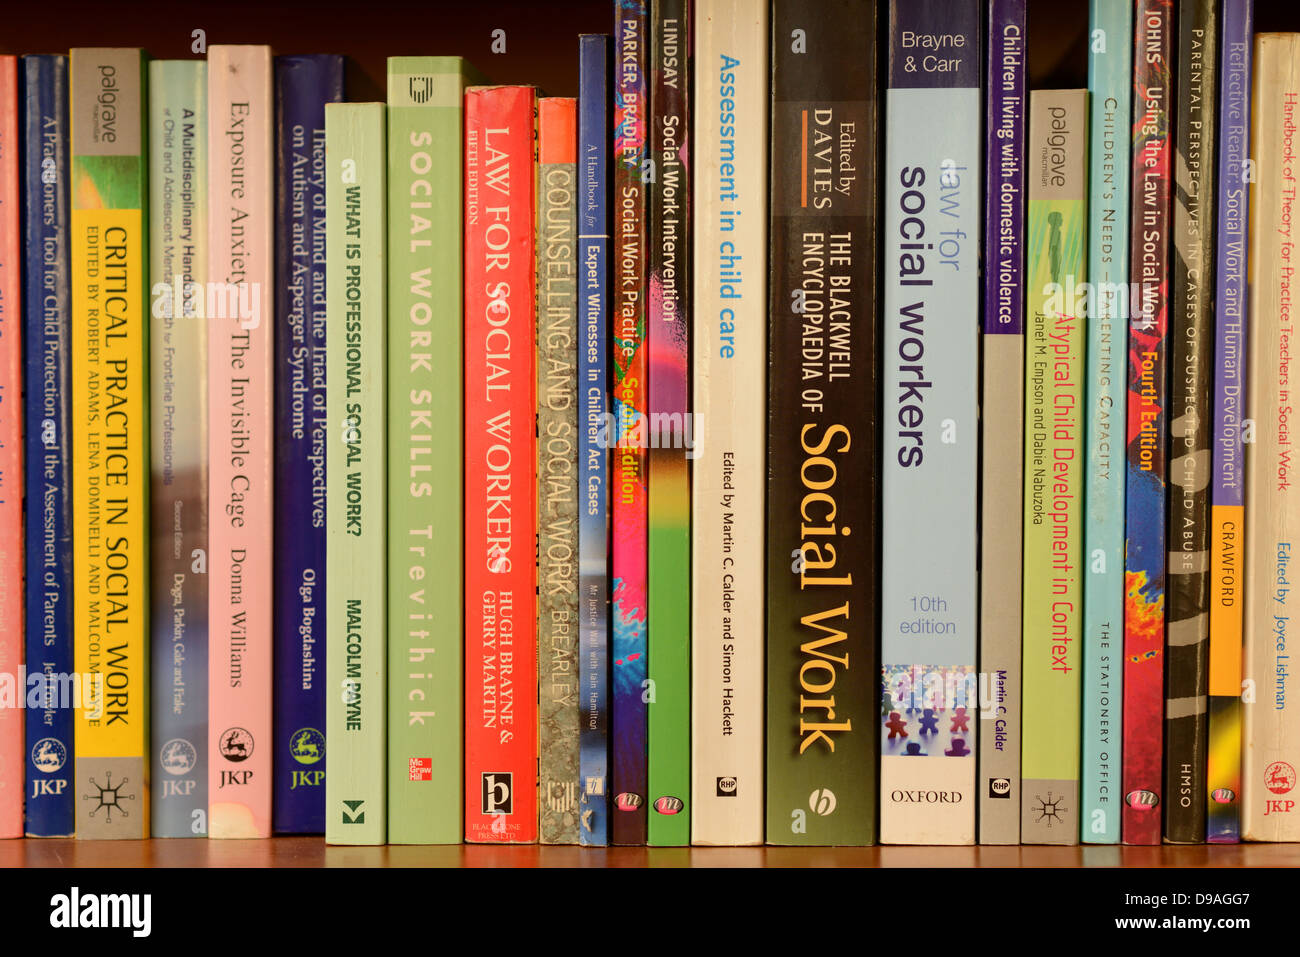 Social Work text books on a bookshelf - Stock Image